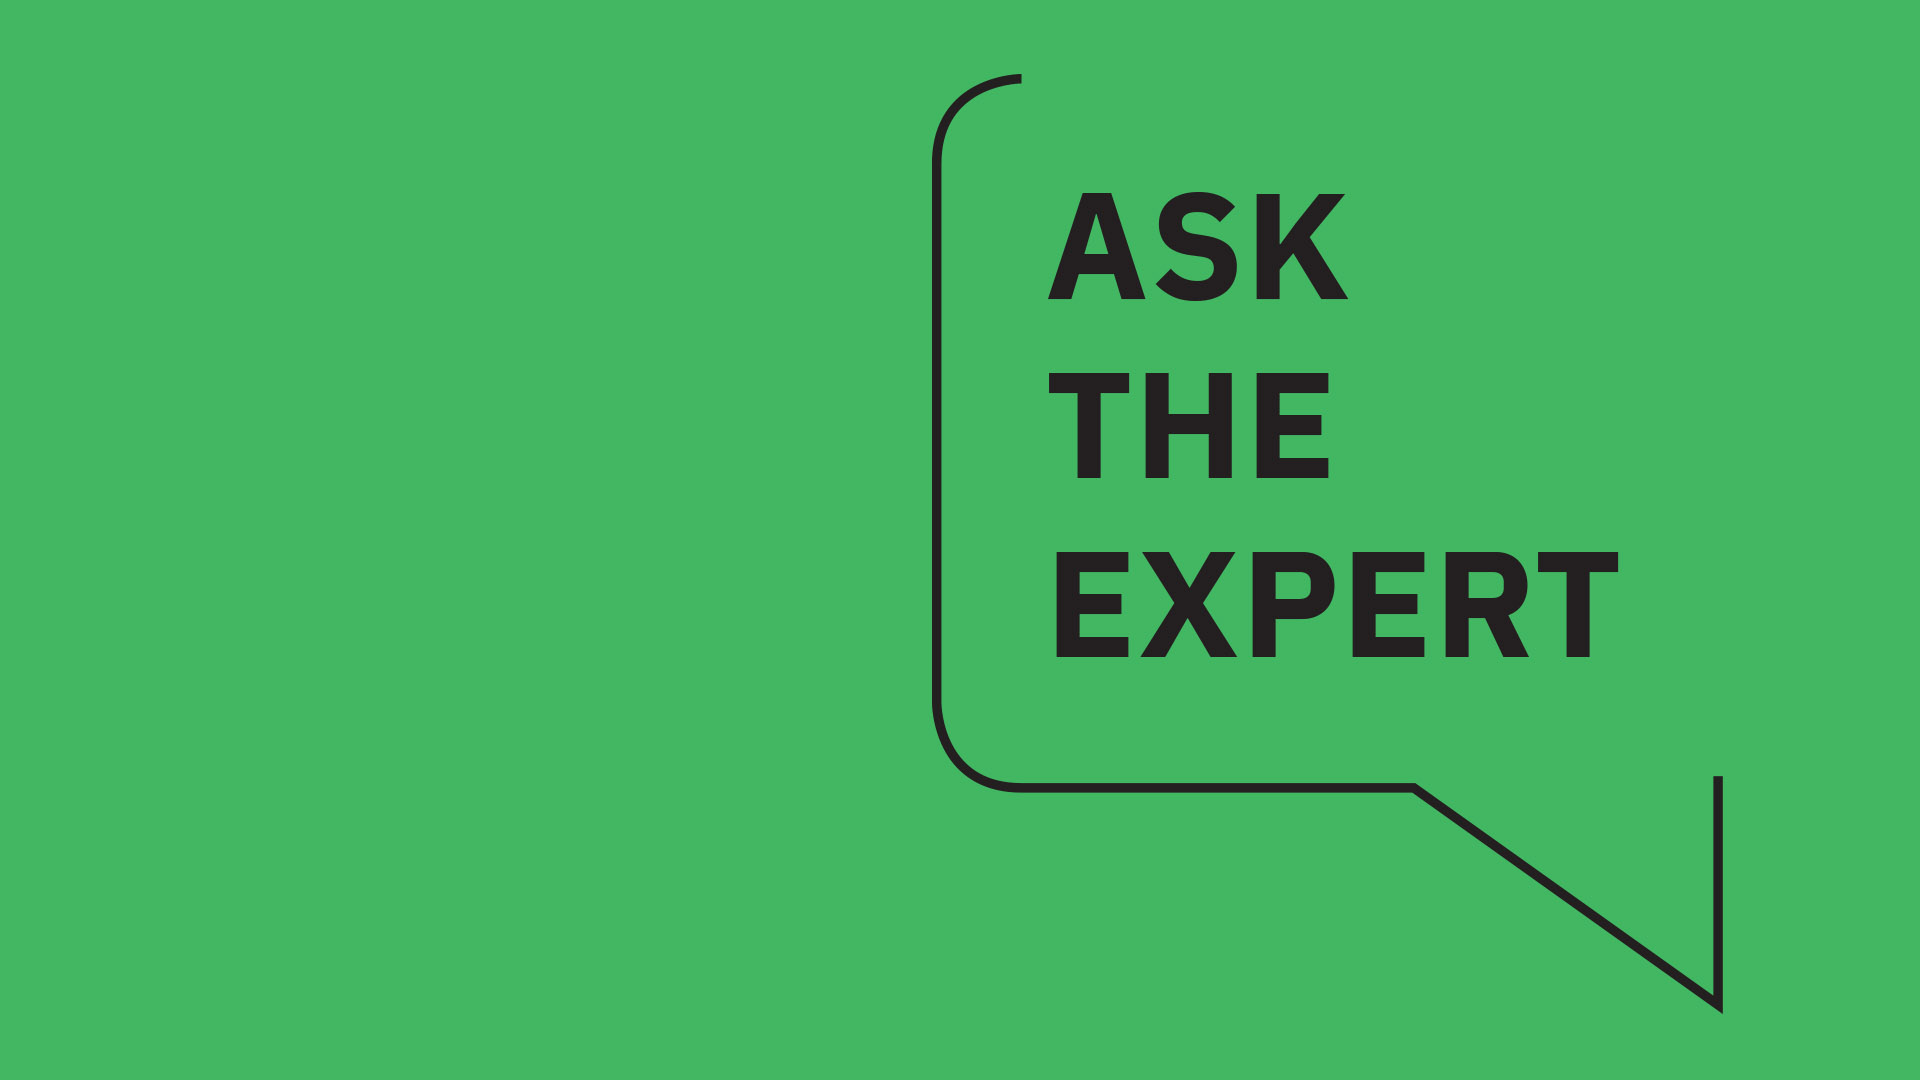 Ask the Expert text on green background